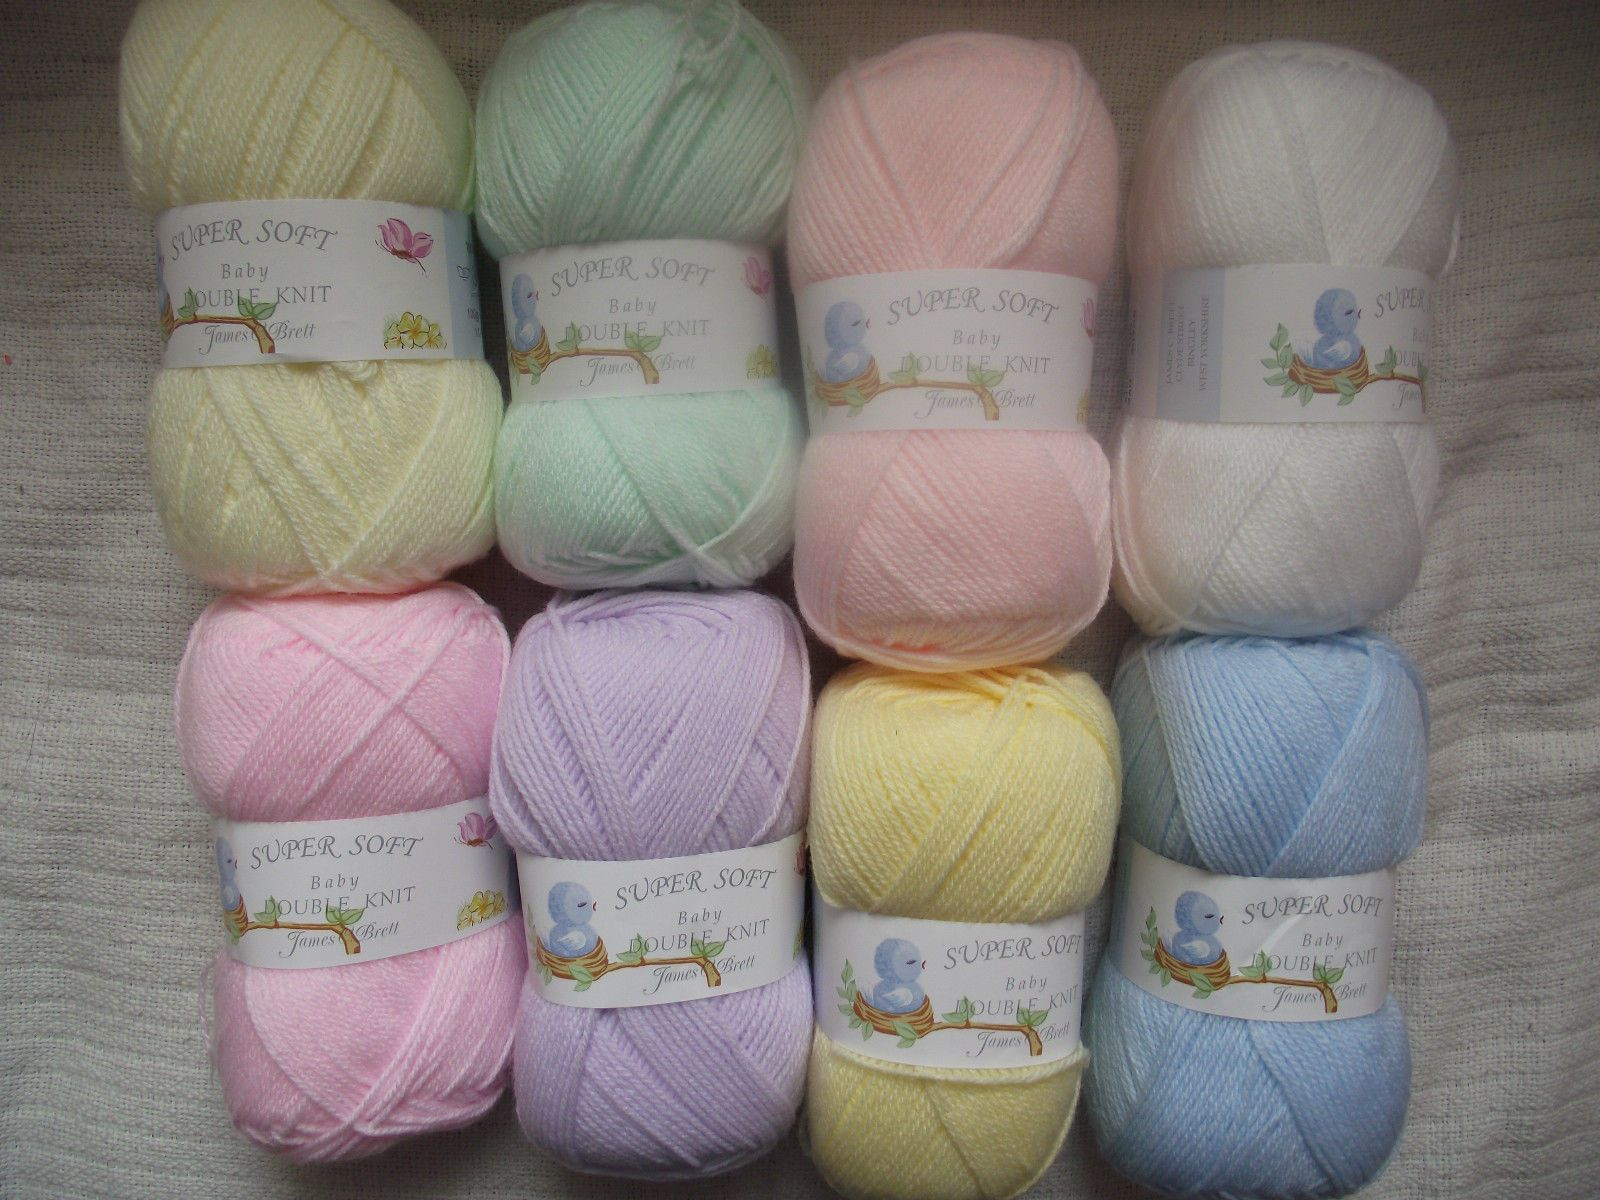 8.8 GBP - 800G Super Soft Baby Double Knitting Wool - James C